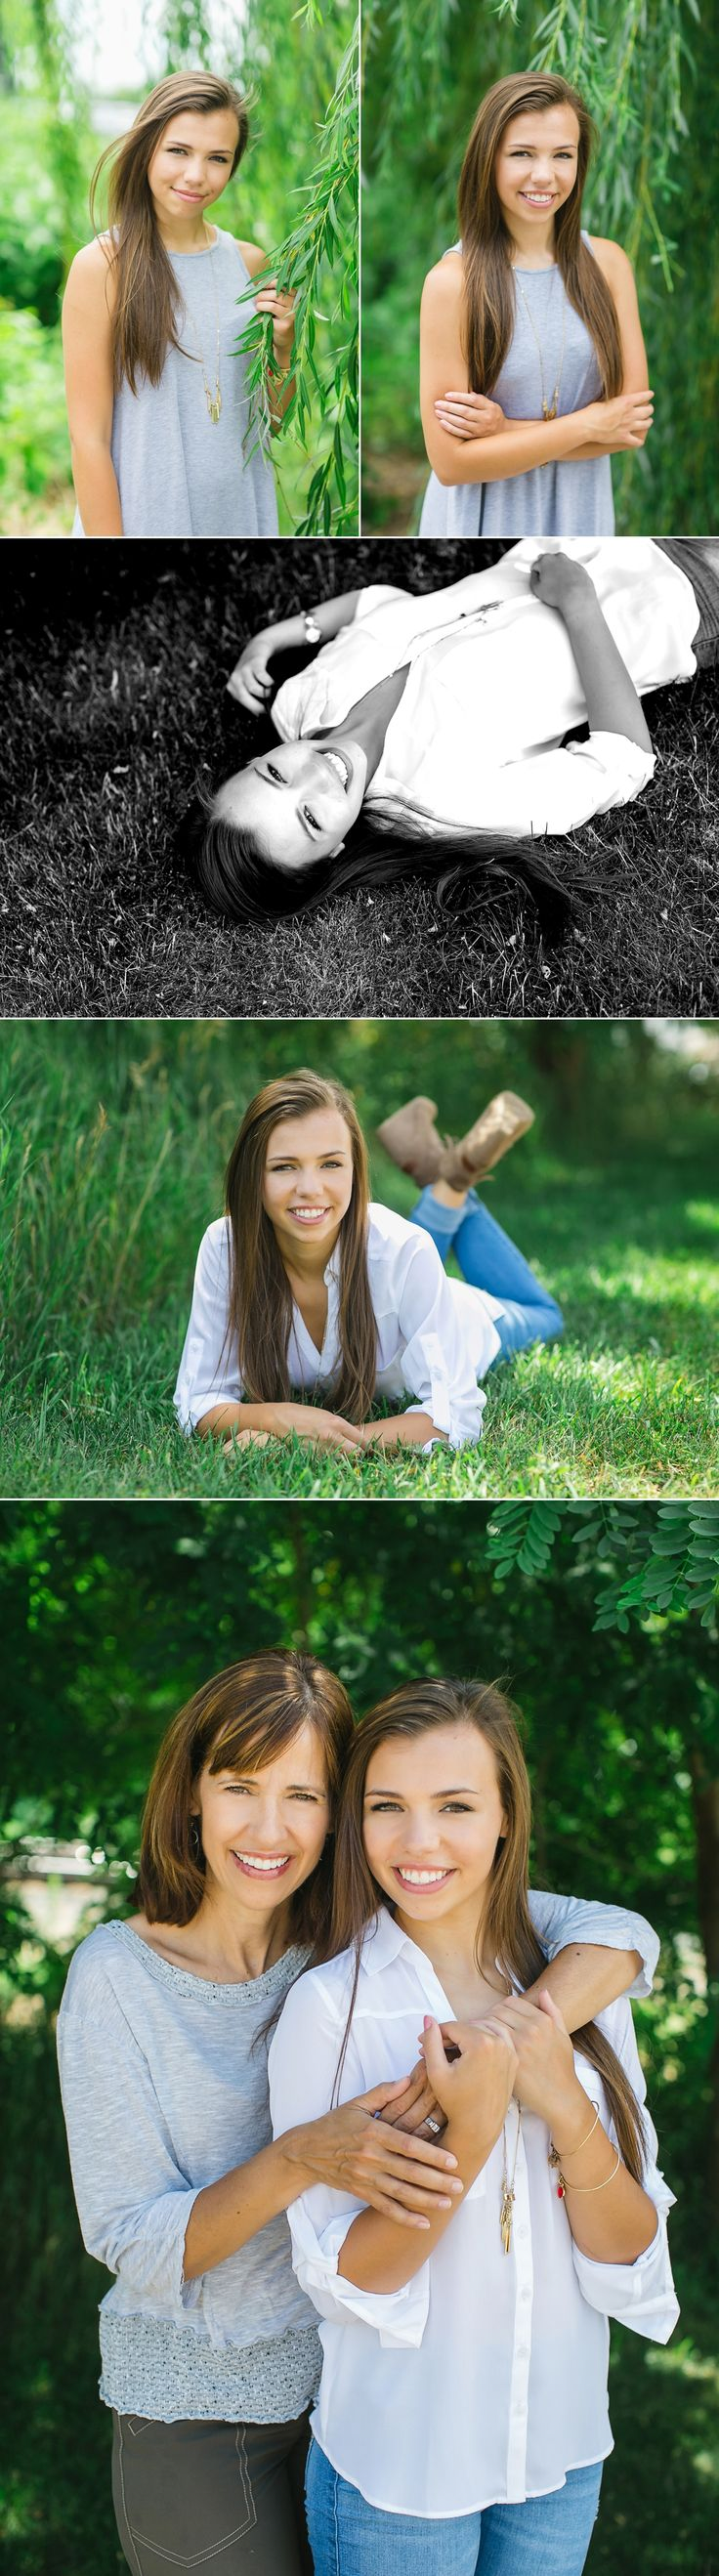 Carly | Eastview High School Senior Pictures » Twin Cities Senior Portraits | Photography By Nealy